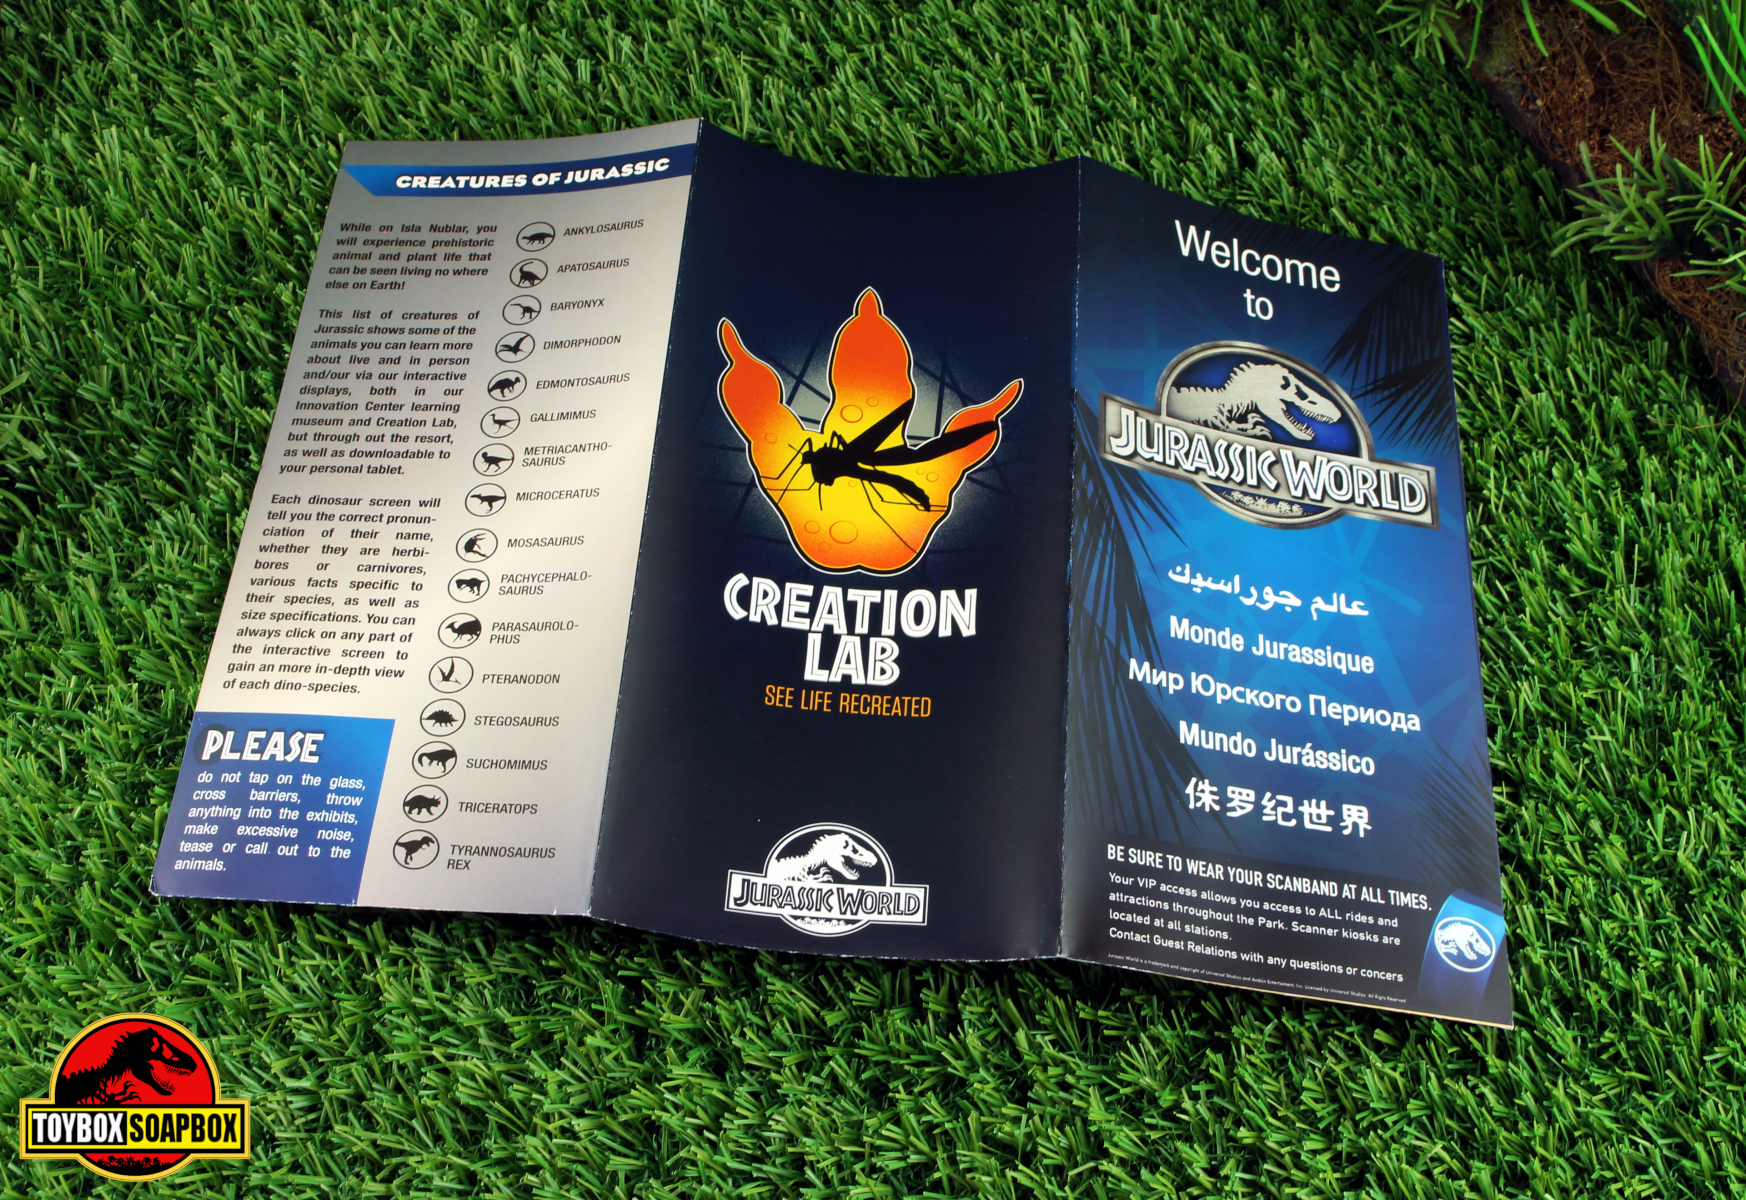 jurassic world park map leaflet